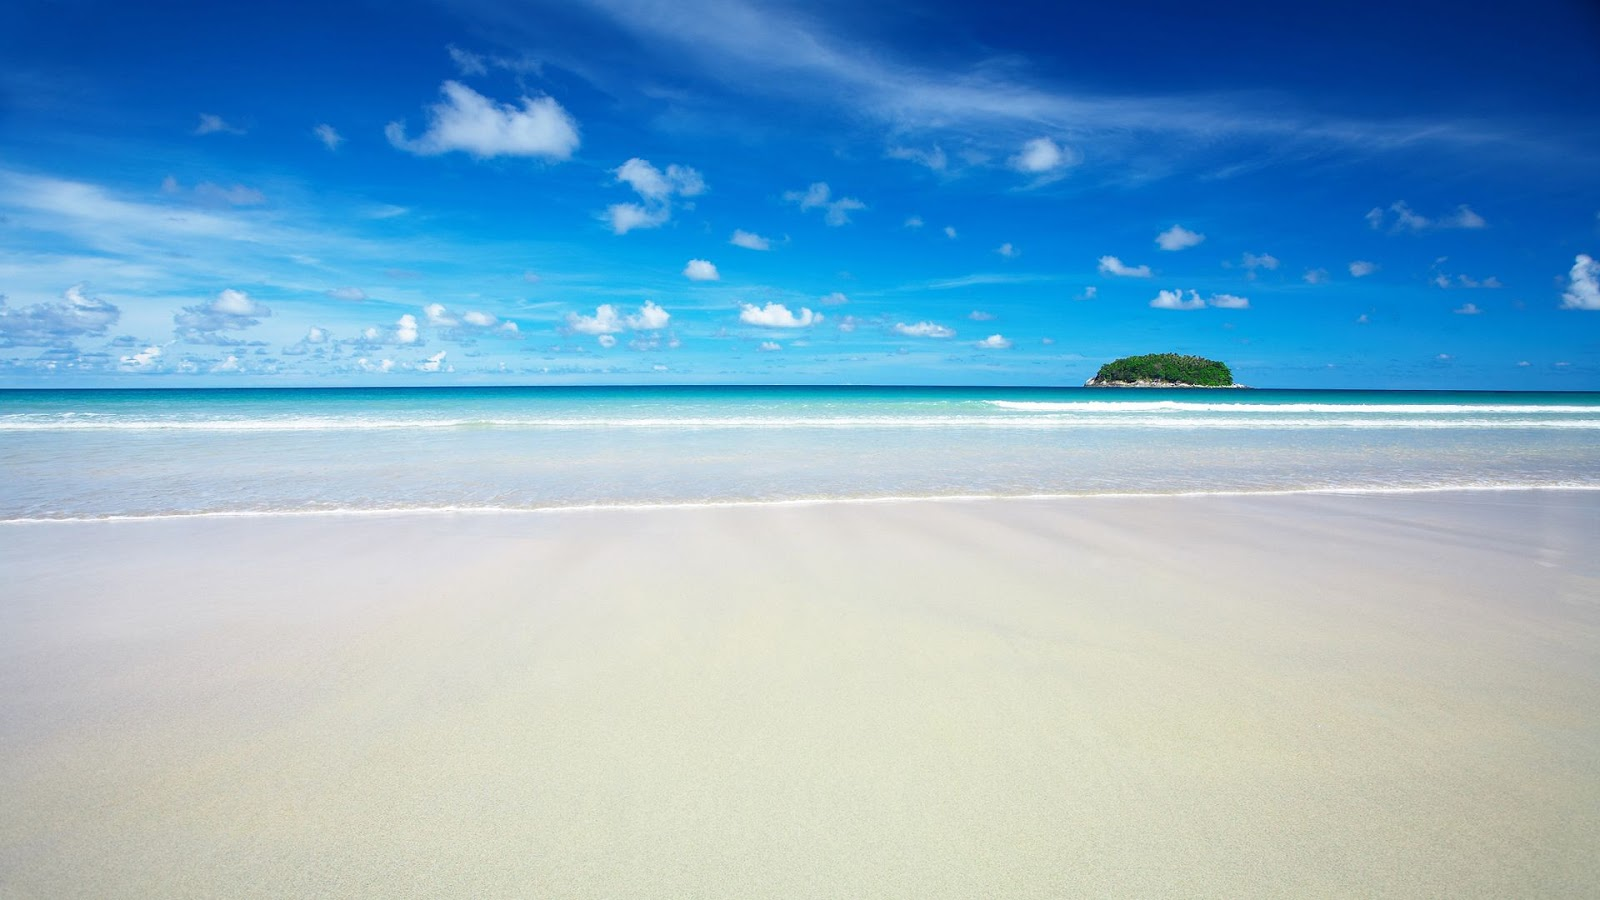 Beach Wallpaper Beautiful Blue Sea